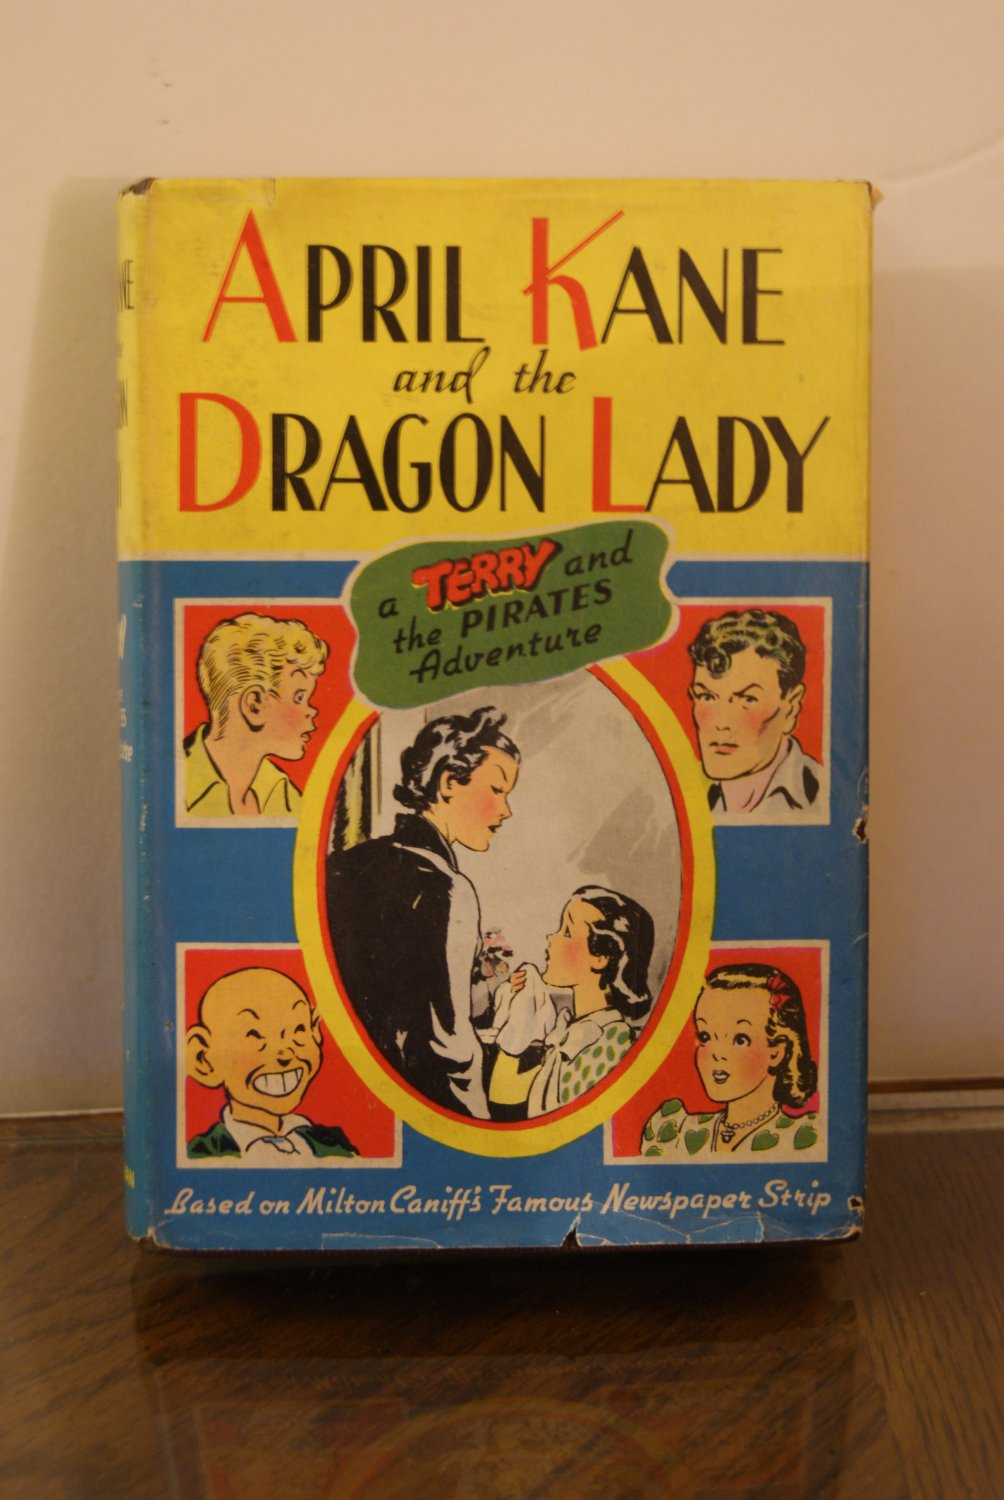 April Kane and the Dragon Lady / Whitman book